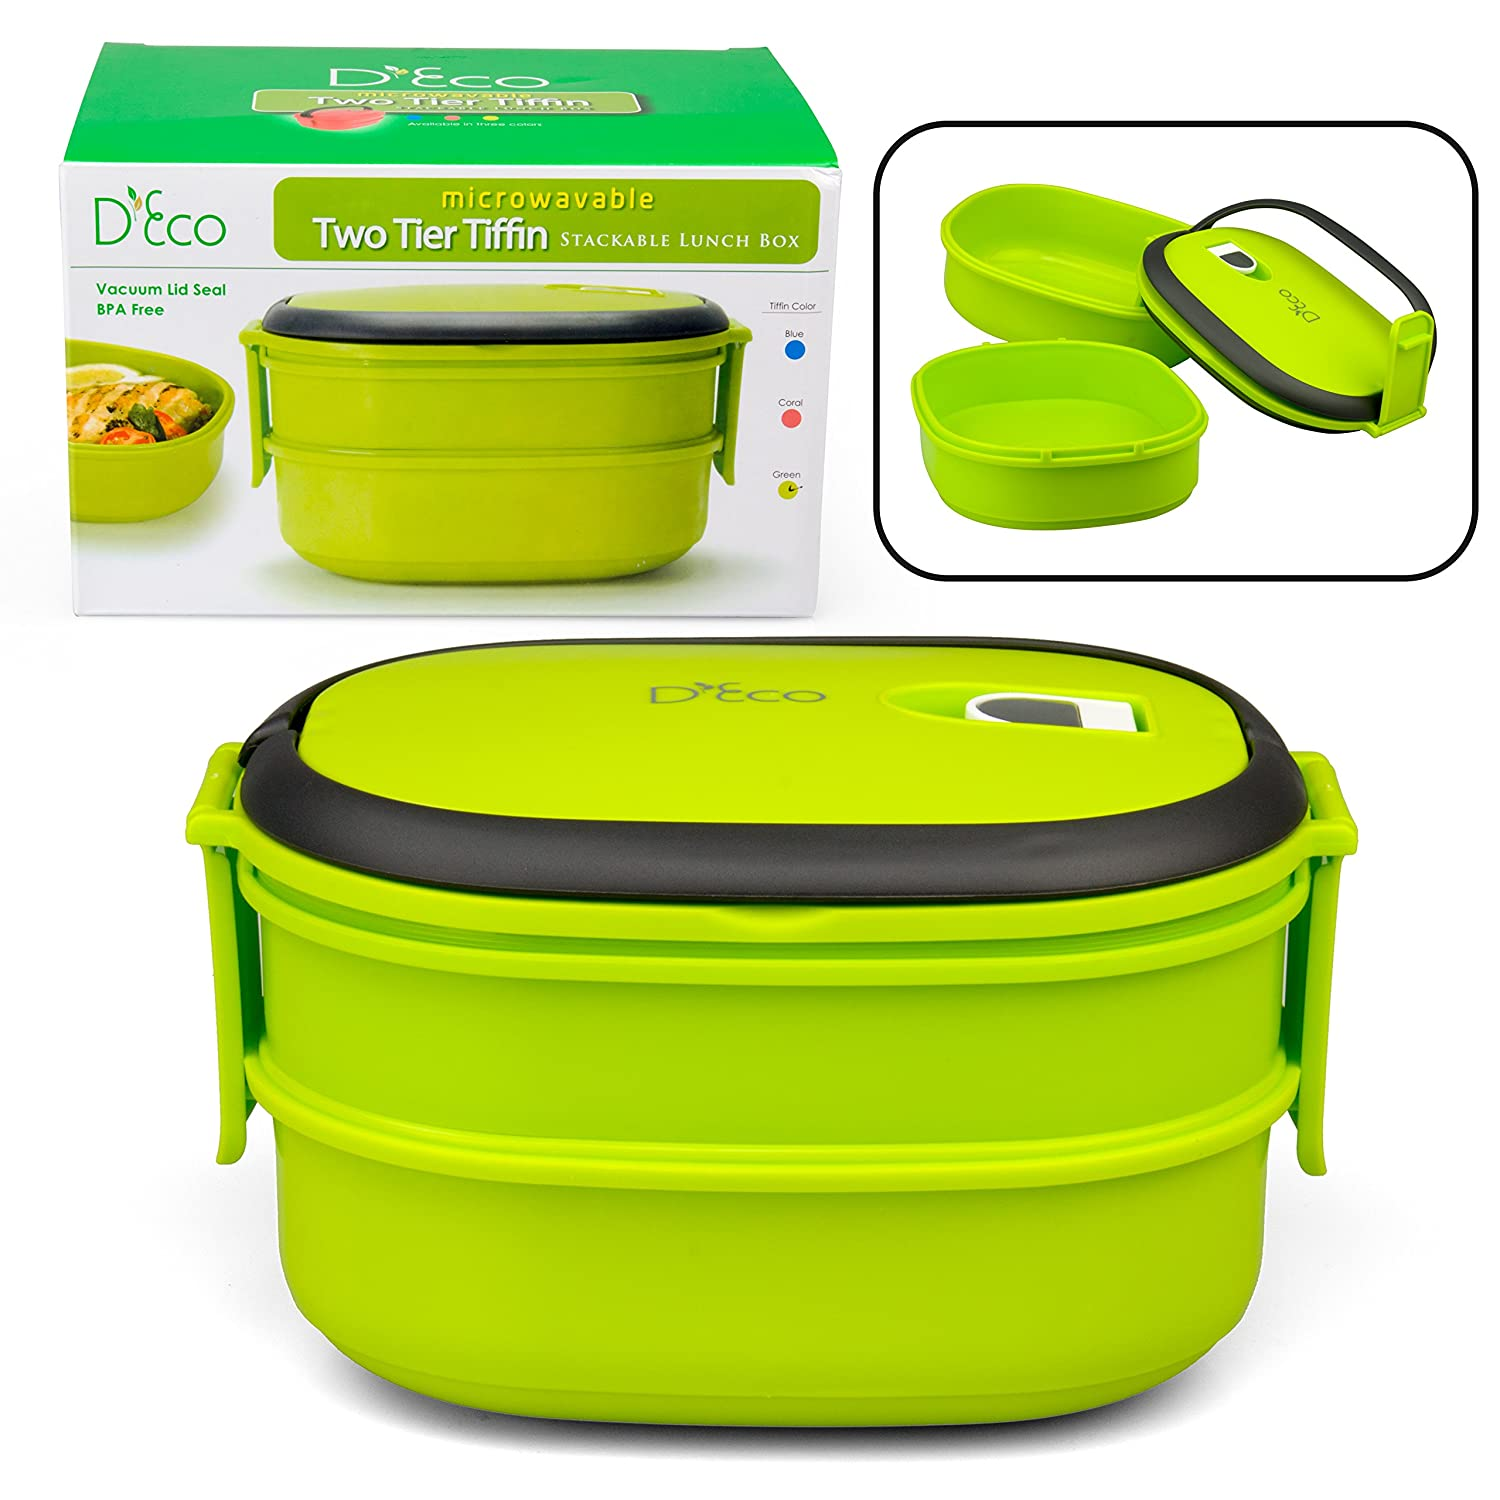 Microwavable Lunch Box- Stacking Two Tier Tiffin with Vacuum Seal Lid